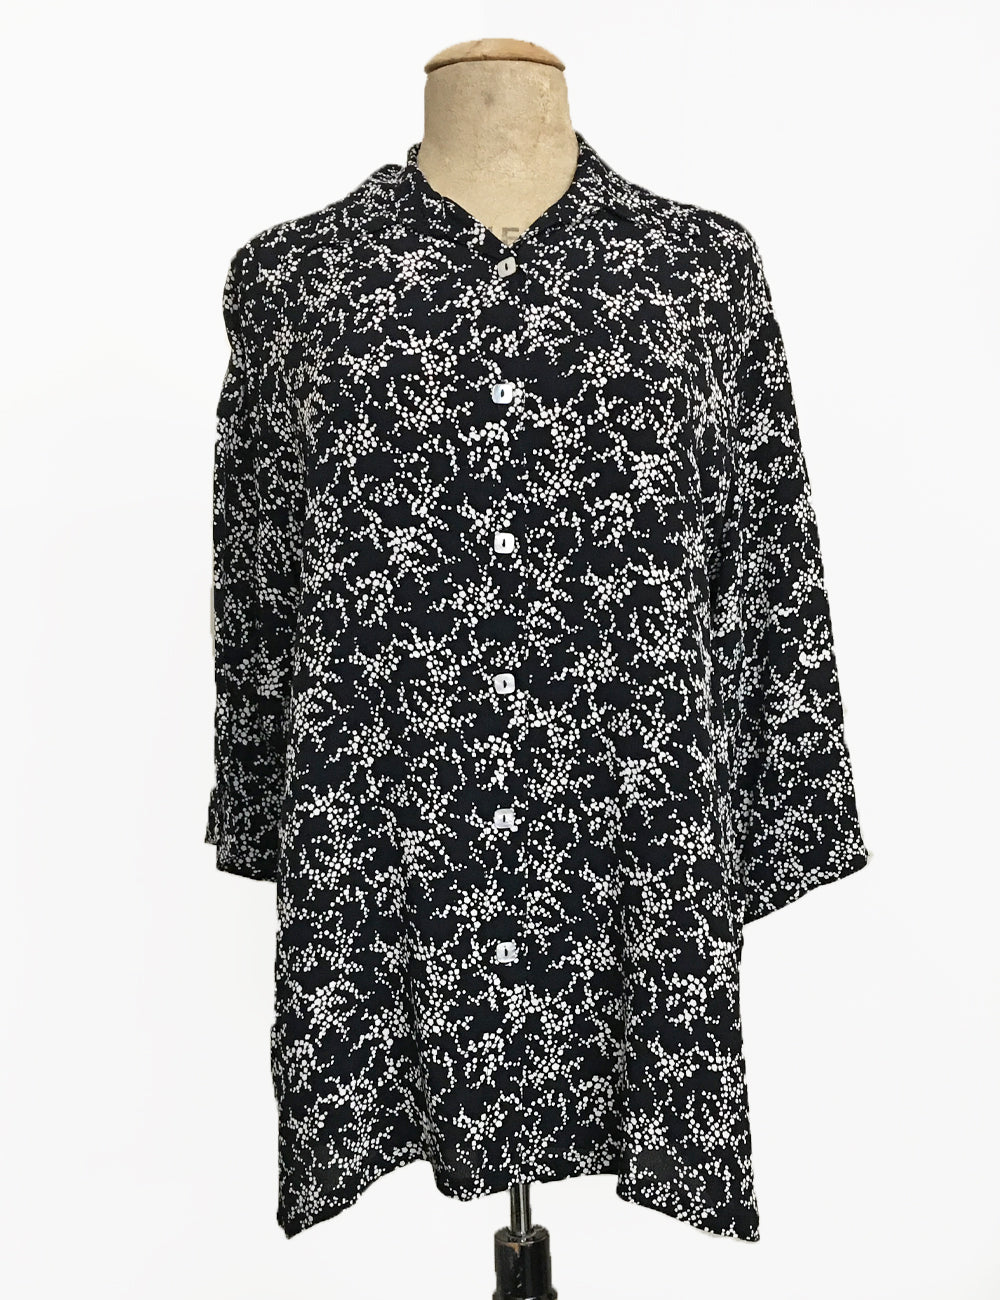 Black & White Bougainvillea Floral Flyaway Button Up Tunic Top